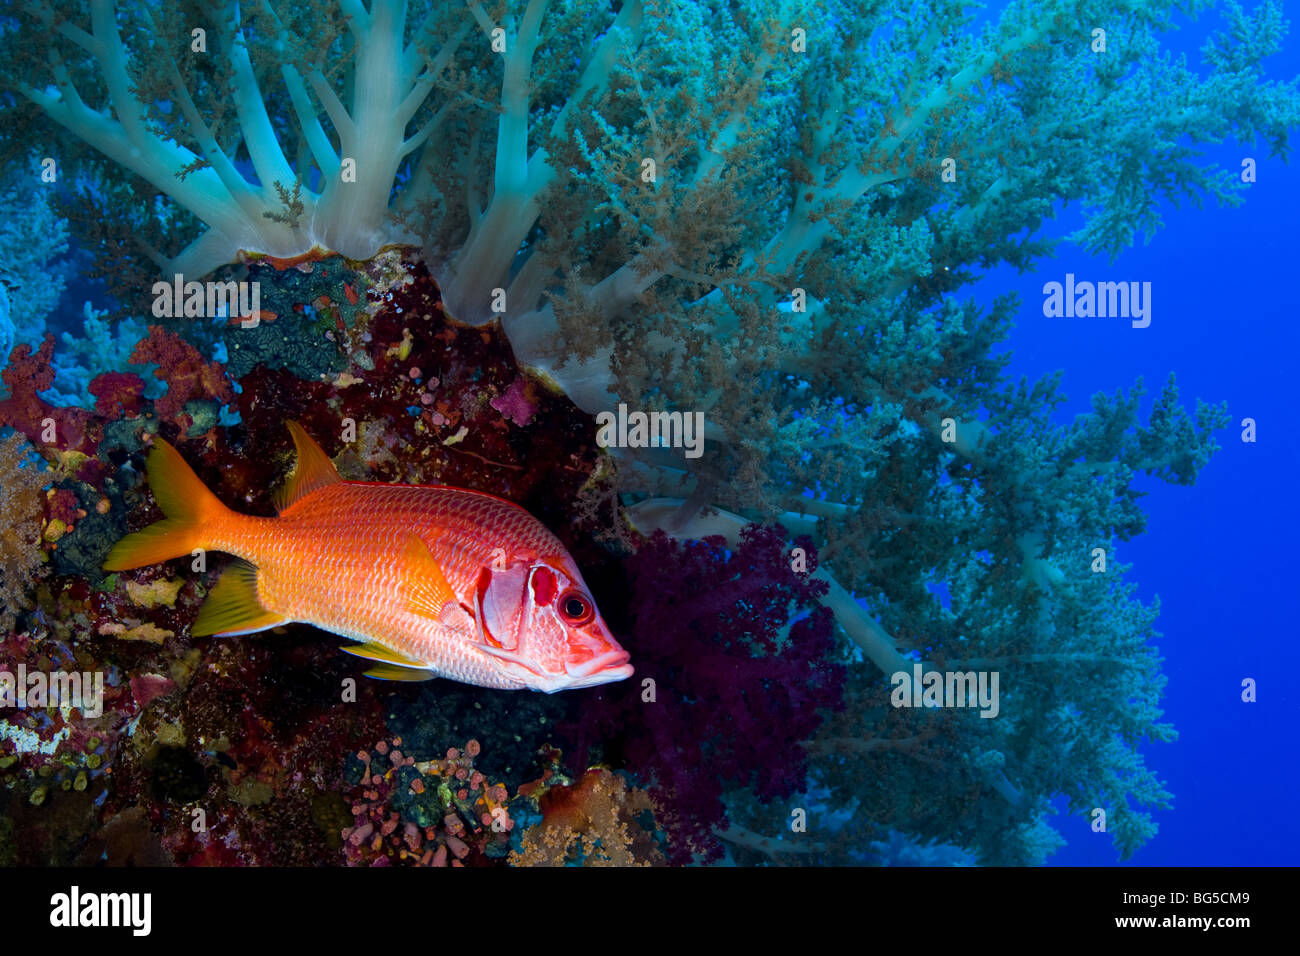 Red Sea coral reefs, Ras Mohammed, National park, colorful, ocean, sea, scuba, diving, marine life, sea life, fish - Stock Image